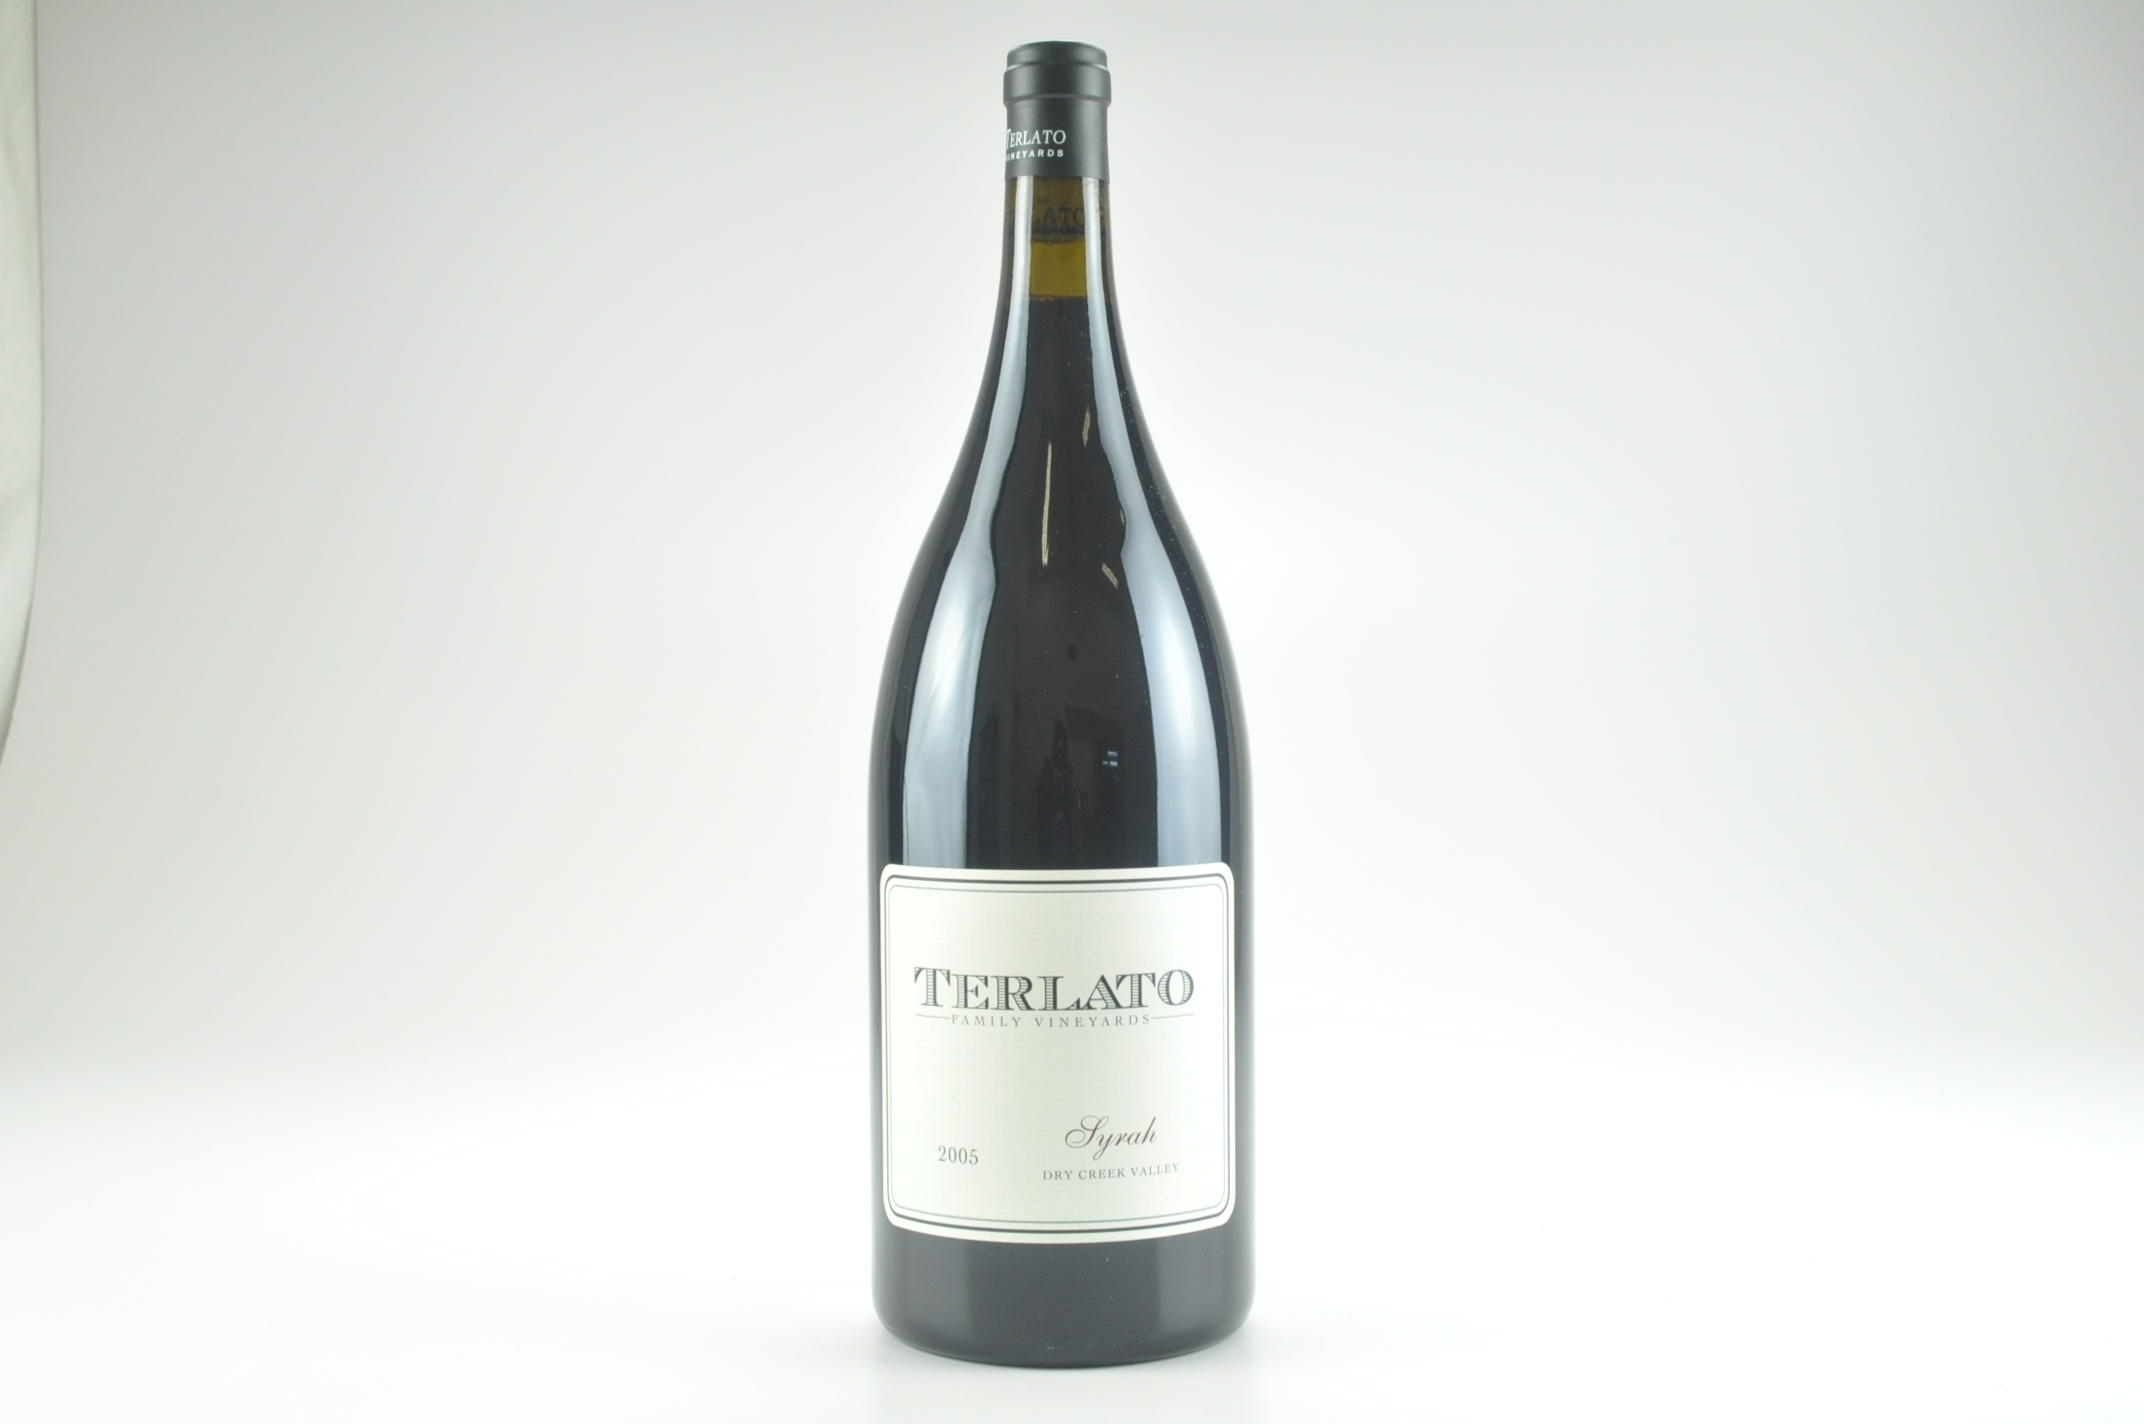 2005 Terlato Syrah 1.5 L, Dry Creek Valley